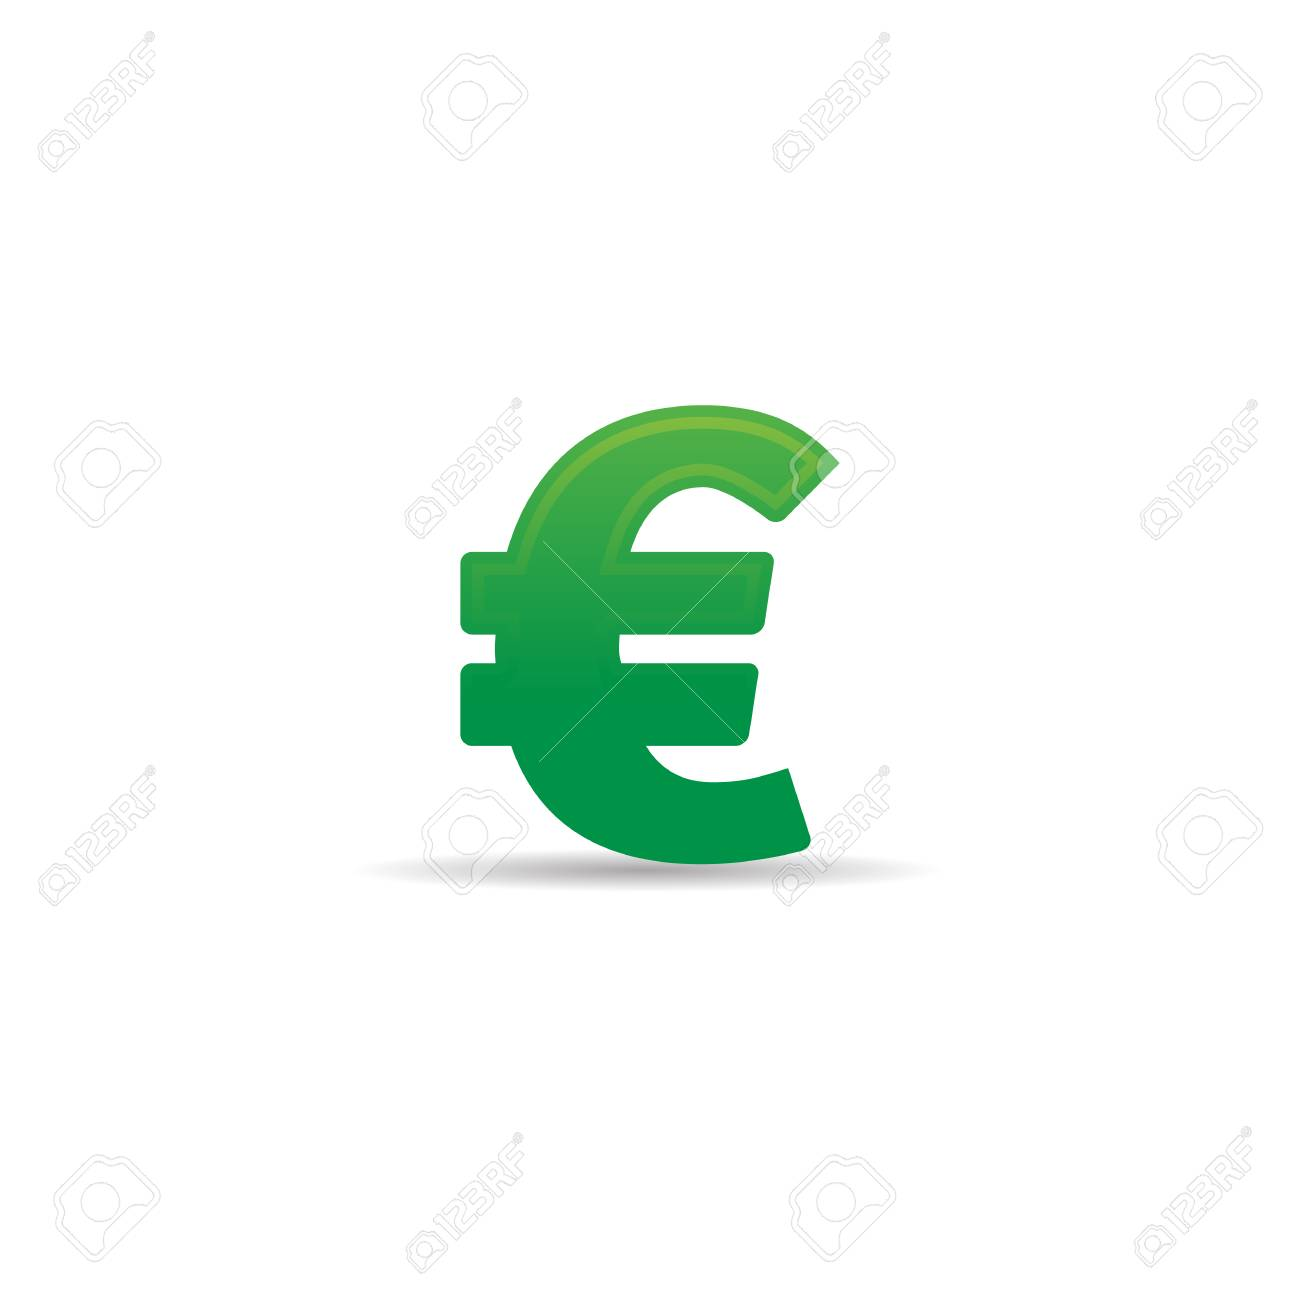 Euro currency symbol icon in color money market europe royalty free euro currency symbol icon in color money market europe stock vector 71631651 buycottarizona Choice Image